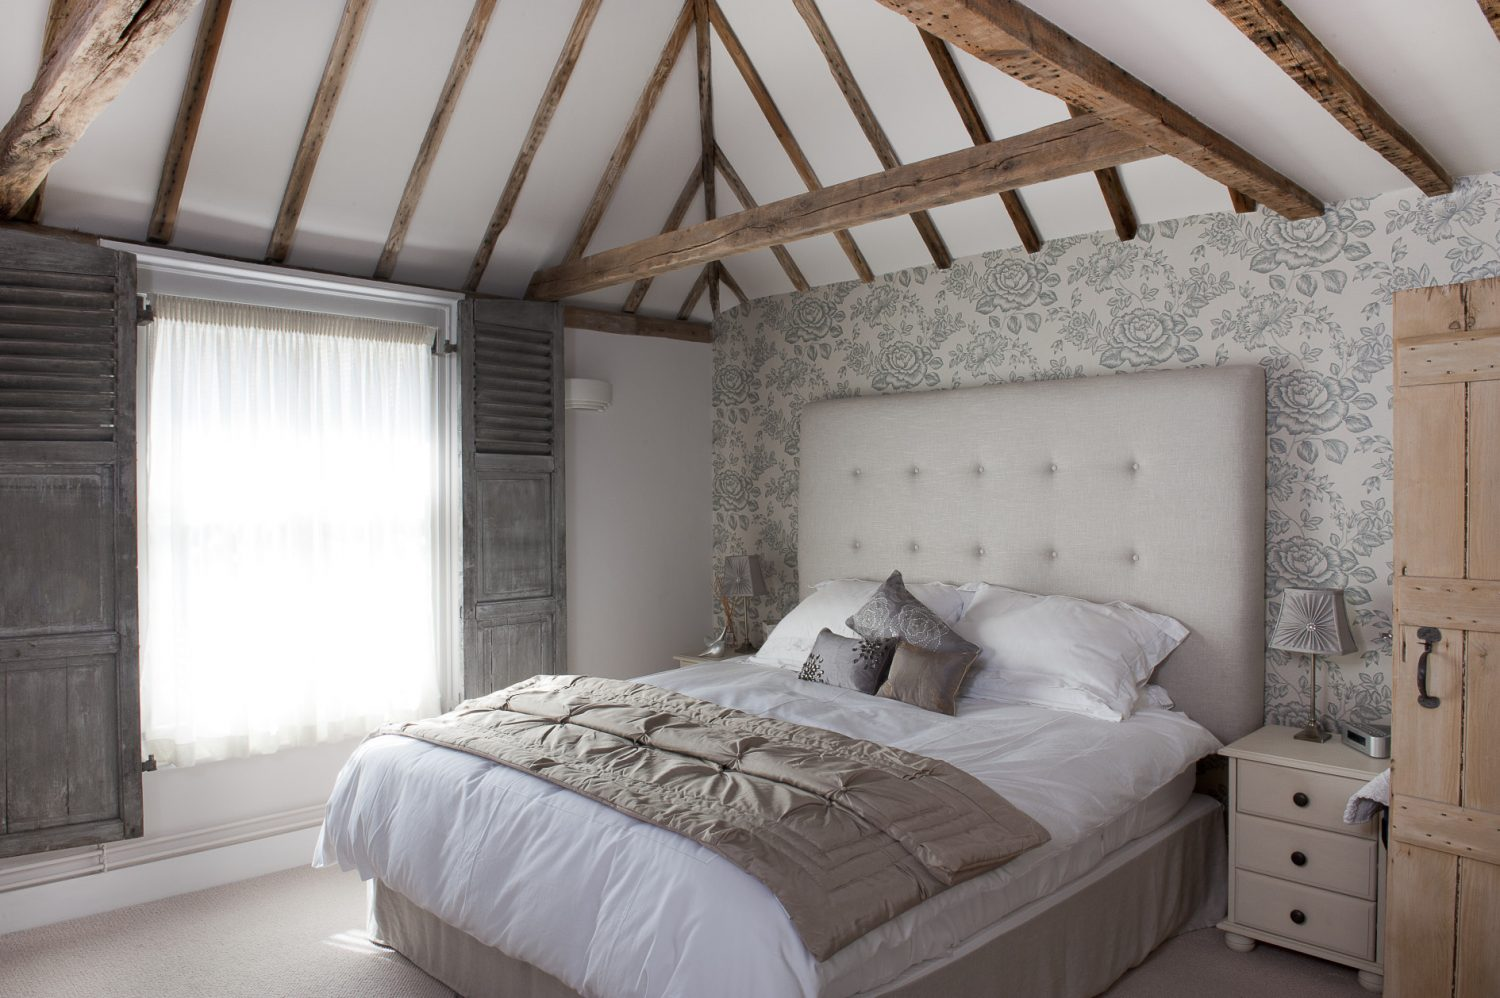 In the glamorous master bedroom a bed dressed with cotton and satin bedclothes is set against a feature wall of Sanderson wallpaper. Plain muslin is draped across the window for privacy during the day and a pair of working shutters with louvred panels can be drawn across at night